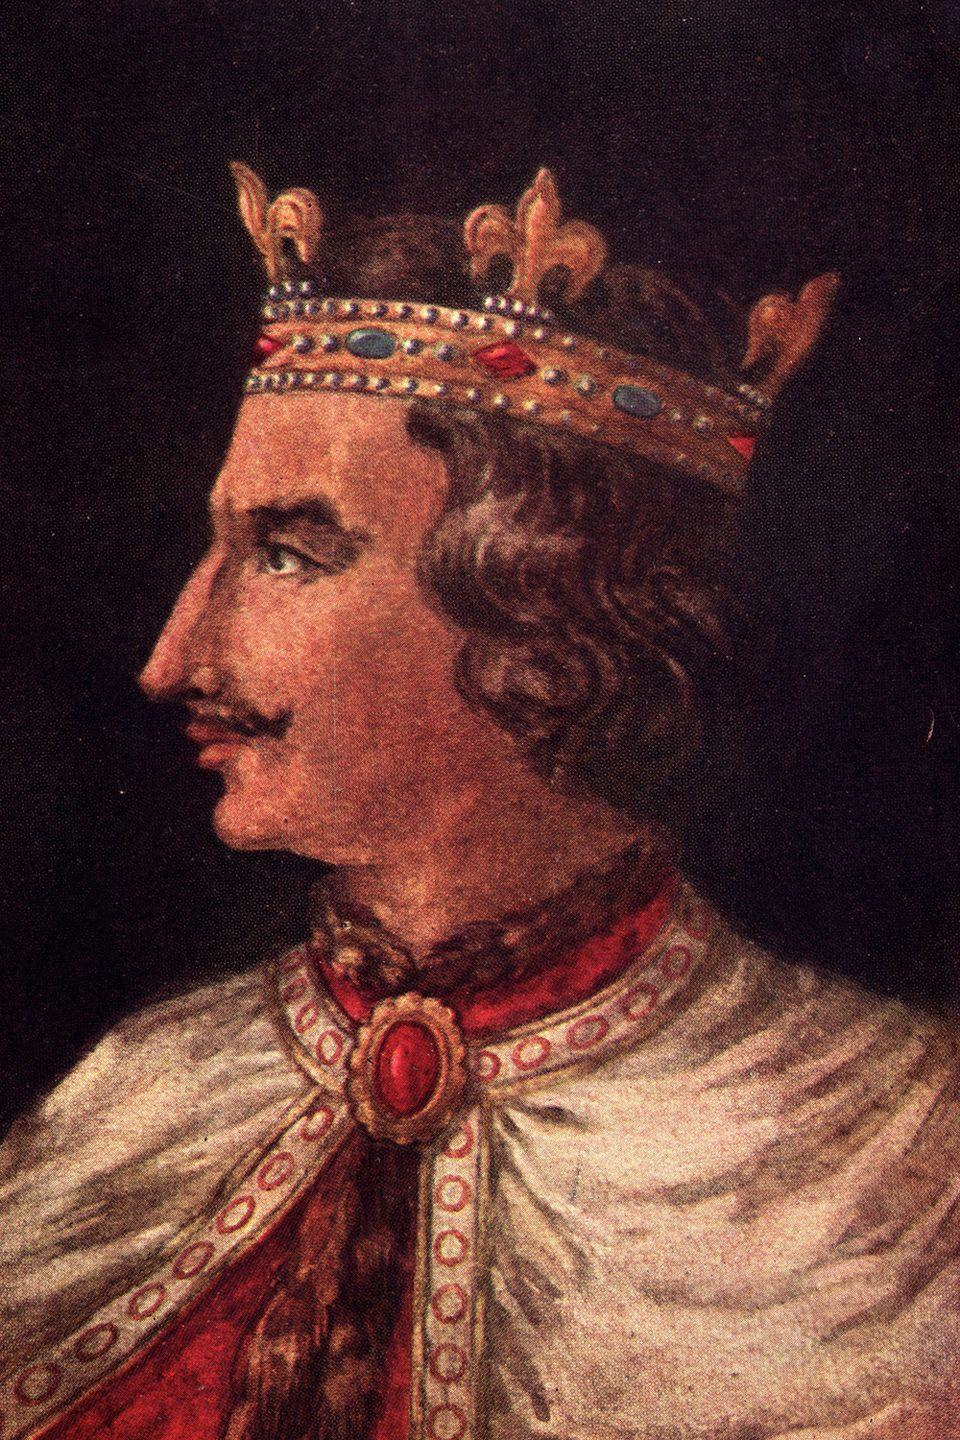 "<p>Robert FitzRoy, the <a href=""https://en.wikipedia.org/wiki/Robert,_1st_Earl_of_Gloucester"" rel=""nofollow noopener"" target=""_blank"" data-ylk=""slk:1st Earl of Gloucester"" class=""link rapid-noclick-resp"">1st Earl of Gloucester</a>, is one of the few confirmed illegitimate children of King Henry I. Henry I only had one legitimate daughter named Matilda, but was said to have fathered at least <a href=""https://www.nytimes.com/1993/01/03/nyregion/the-royal-family-tree-sprouts-unofficial-limbs.html"" rel=""nofollow noopener"" target=""_blank"" data-ylk=""slk:22 other children"" class=""link rapid-noclick-resp"">22 other children</a> while not married. The surname <a href=""https://en.wikipedia.org/wiki/Fitzroy"" rel=""nofollow noopener"" target=""_blank"" data-ylk=""slk:FitzRoy"" class=""link rapid-noclick-resp"">FitzRoy</a> was often used by the illegitimate sons and daughters of a King or Queen.</p>"